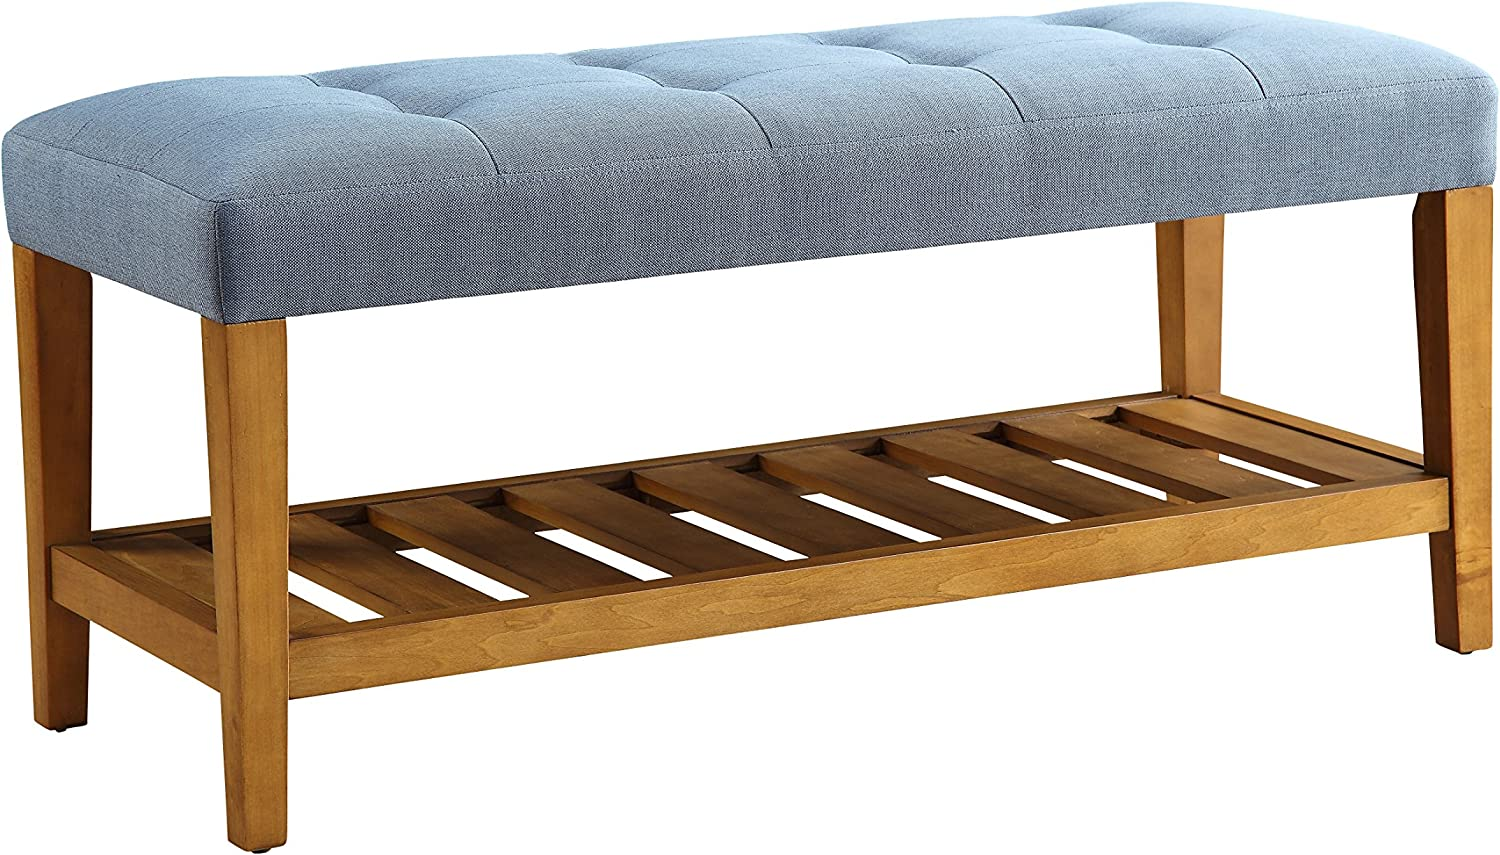 ACME Furniture Charla Bench, Blue & Oak, One Size